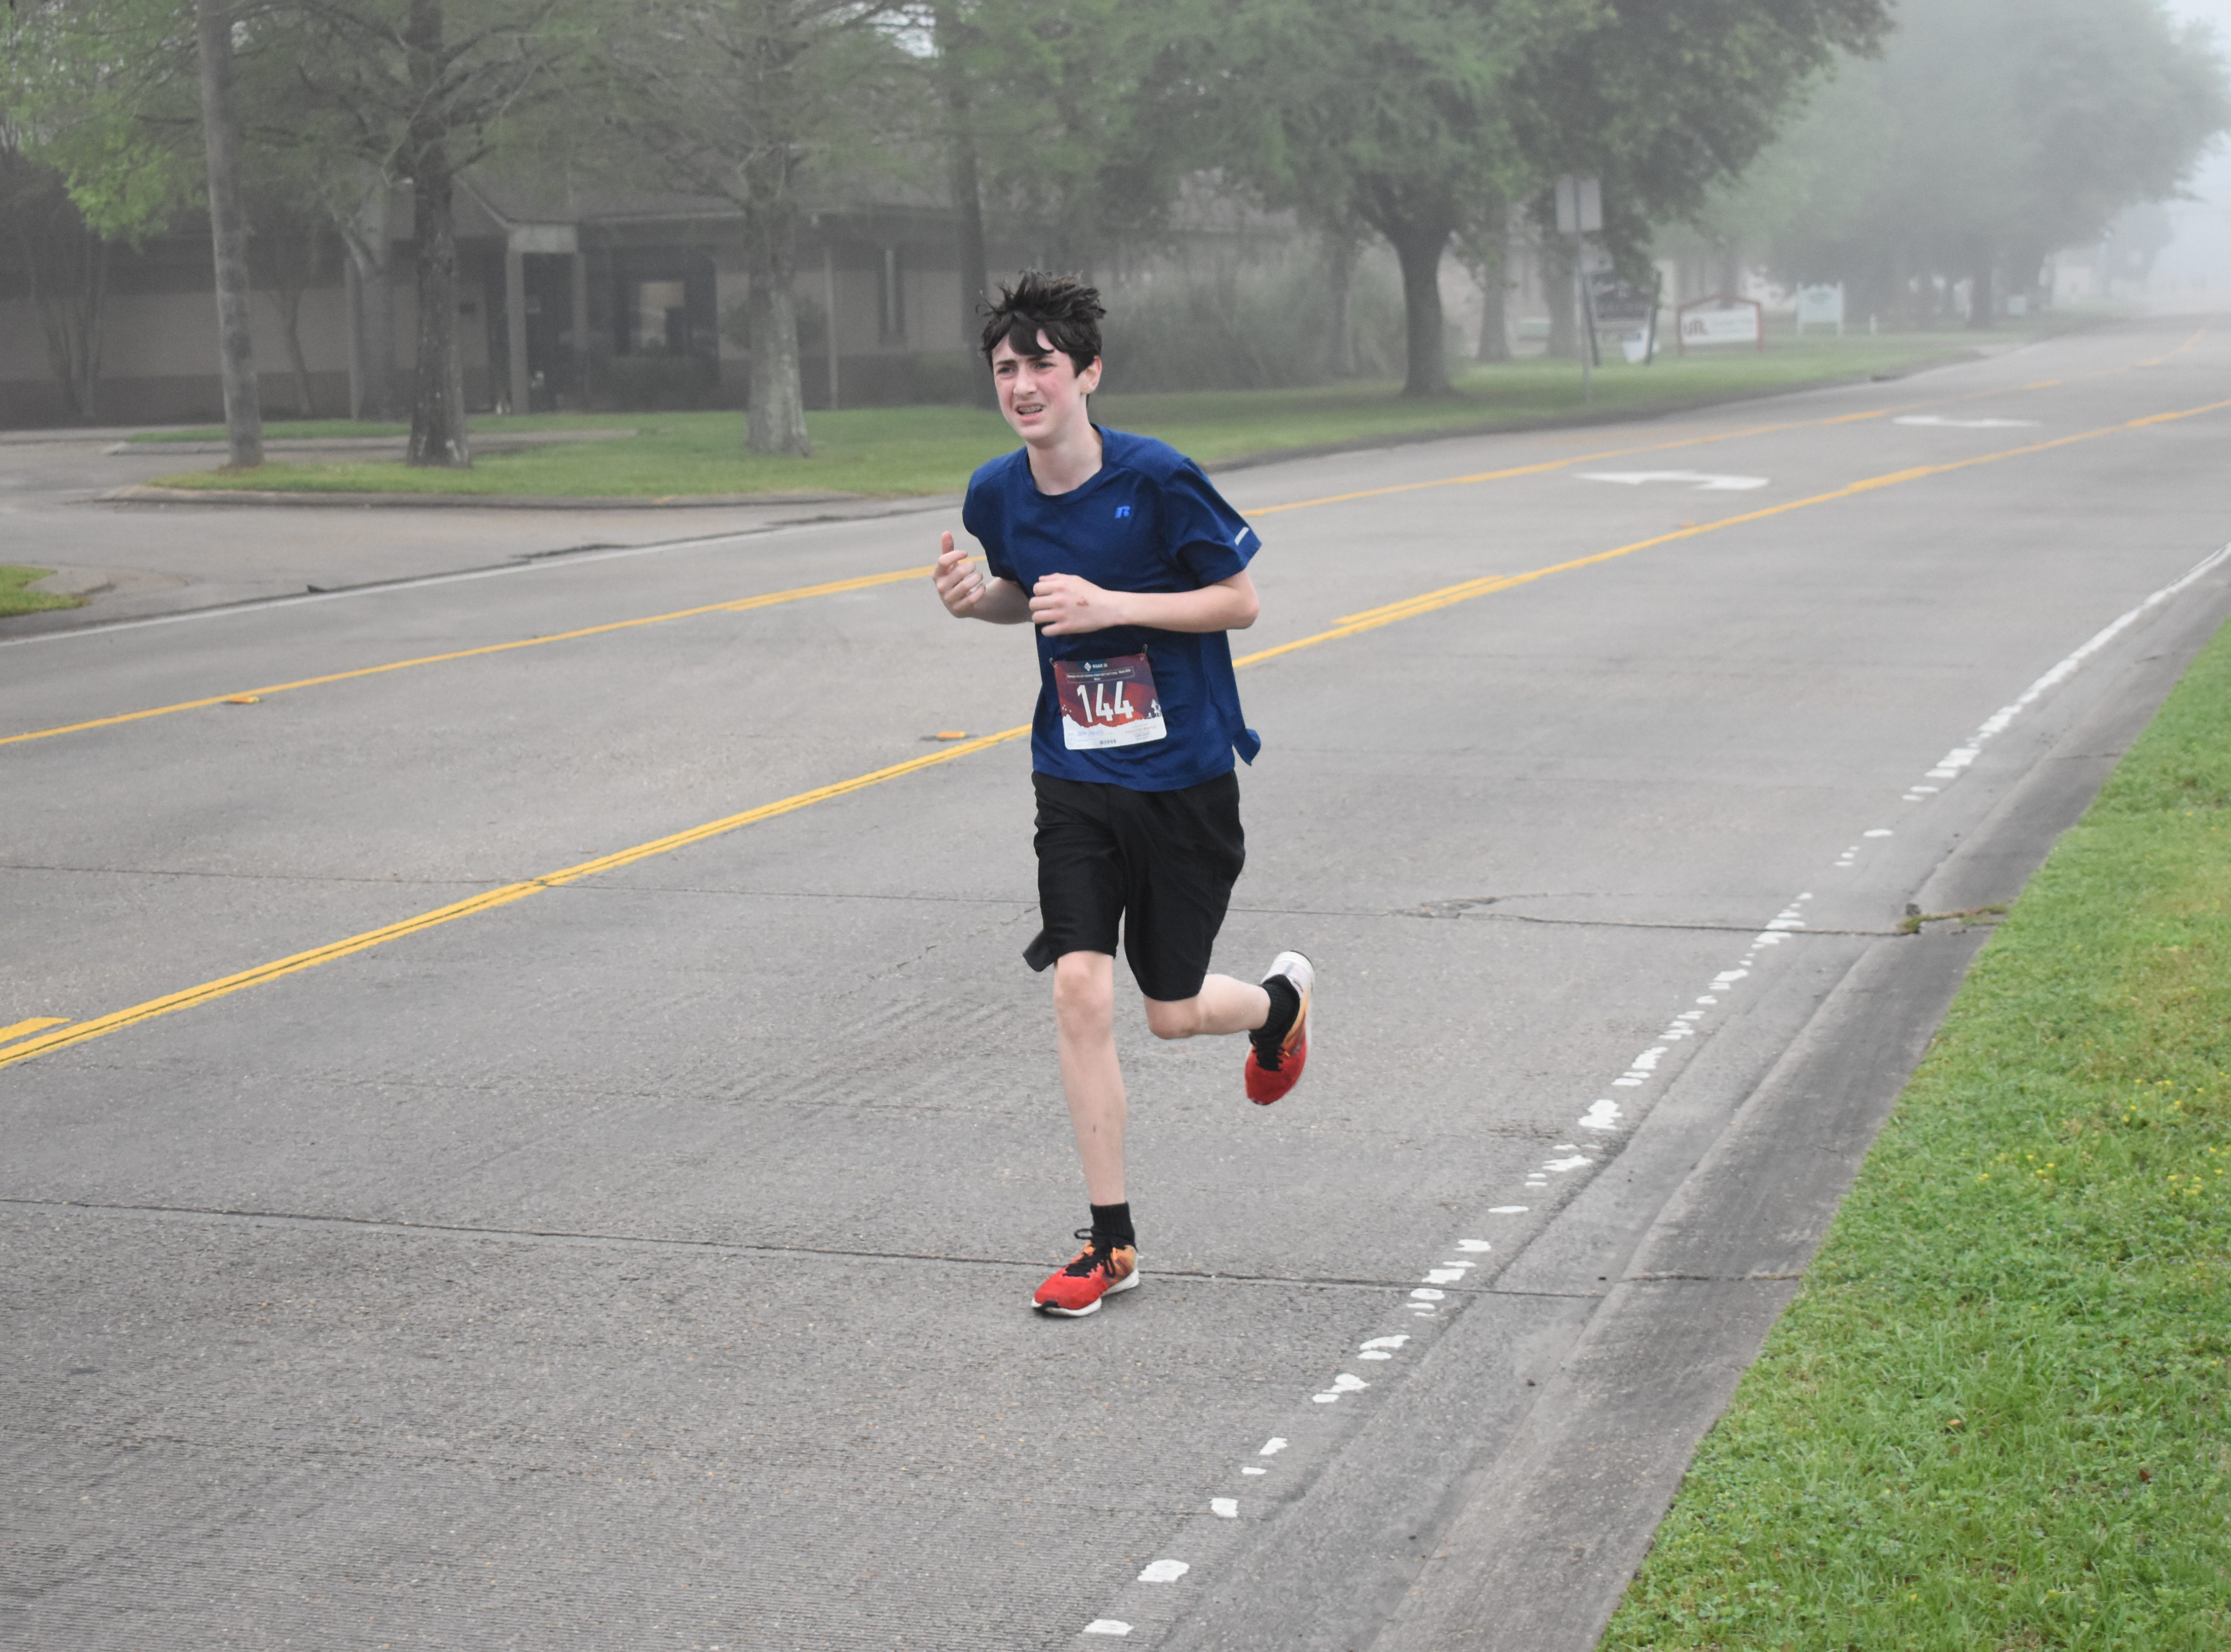 The Louisiana Athletic Club held their Miracle 5k Run from LAC Alexandria located on MacArthur Drive. Over 150 participated in the run. Proceeds benefit the Children's Miracle Network.